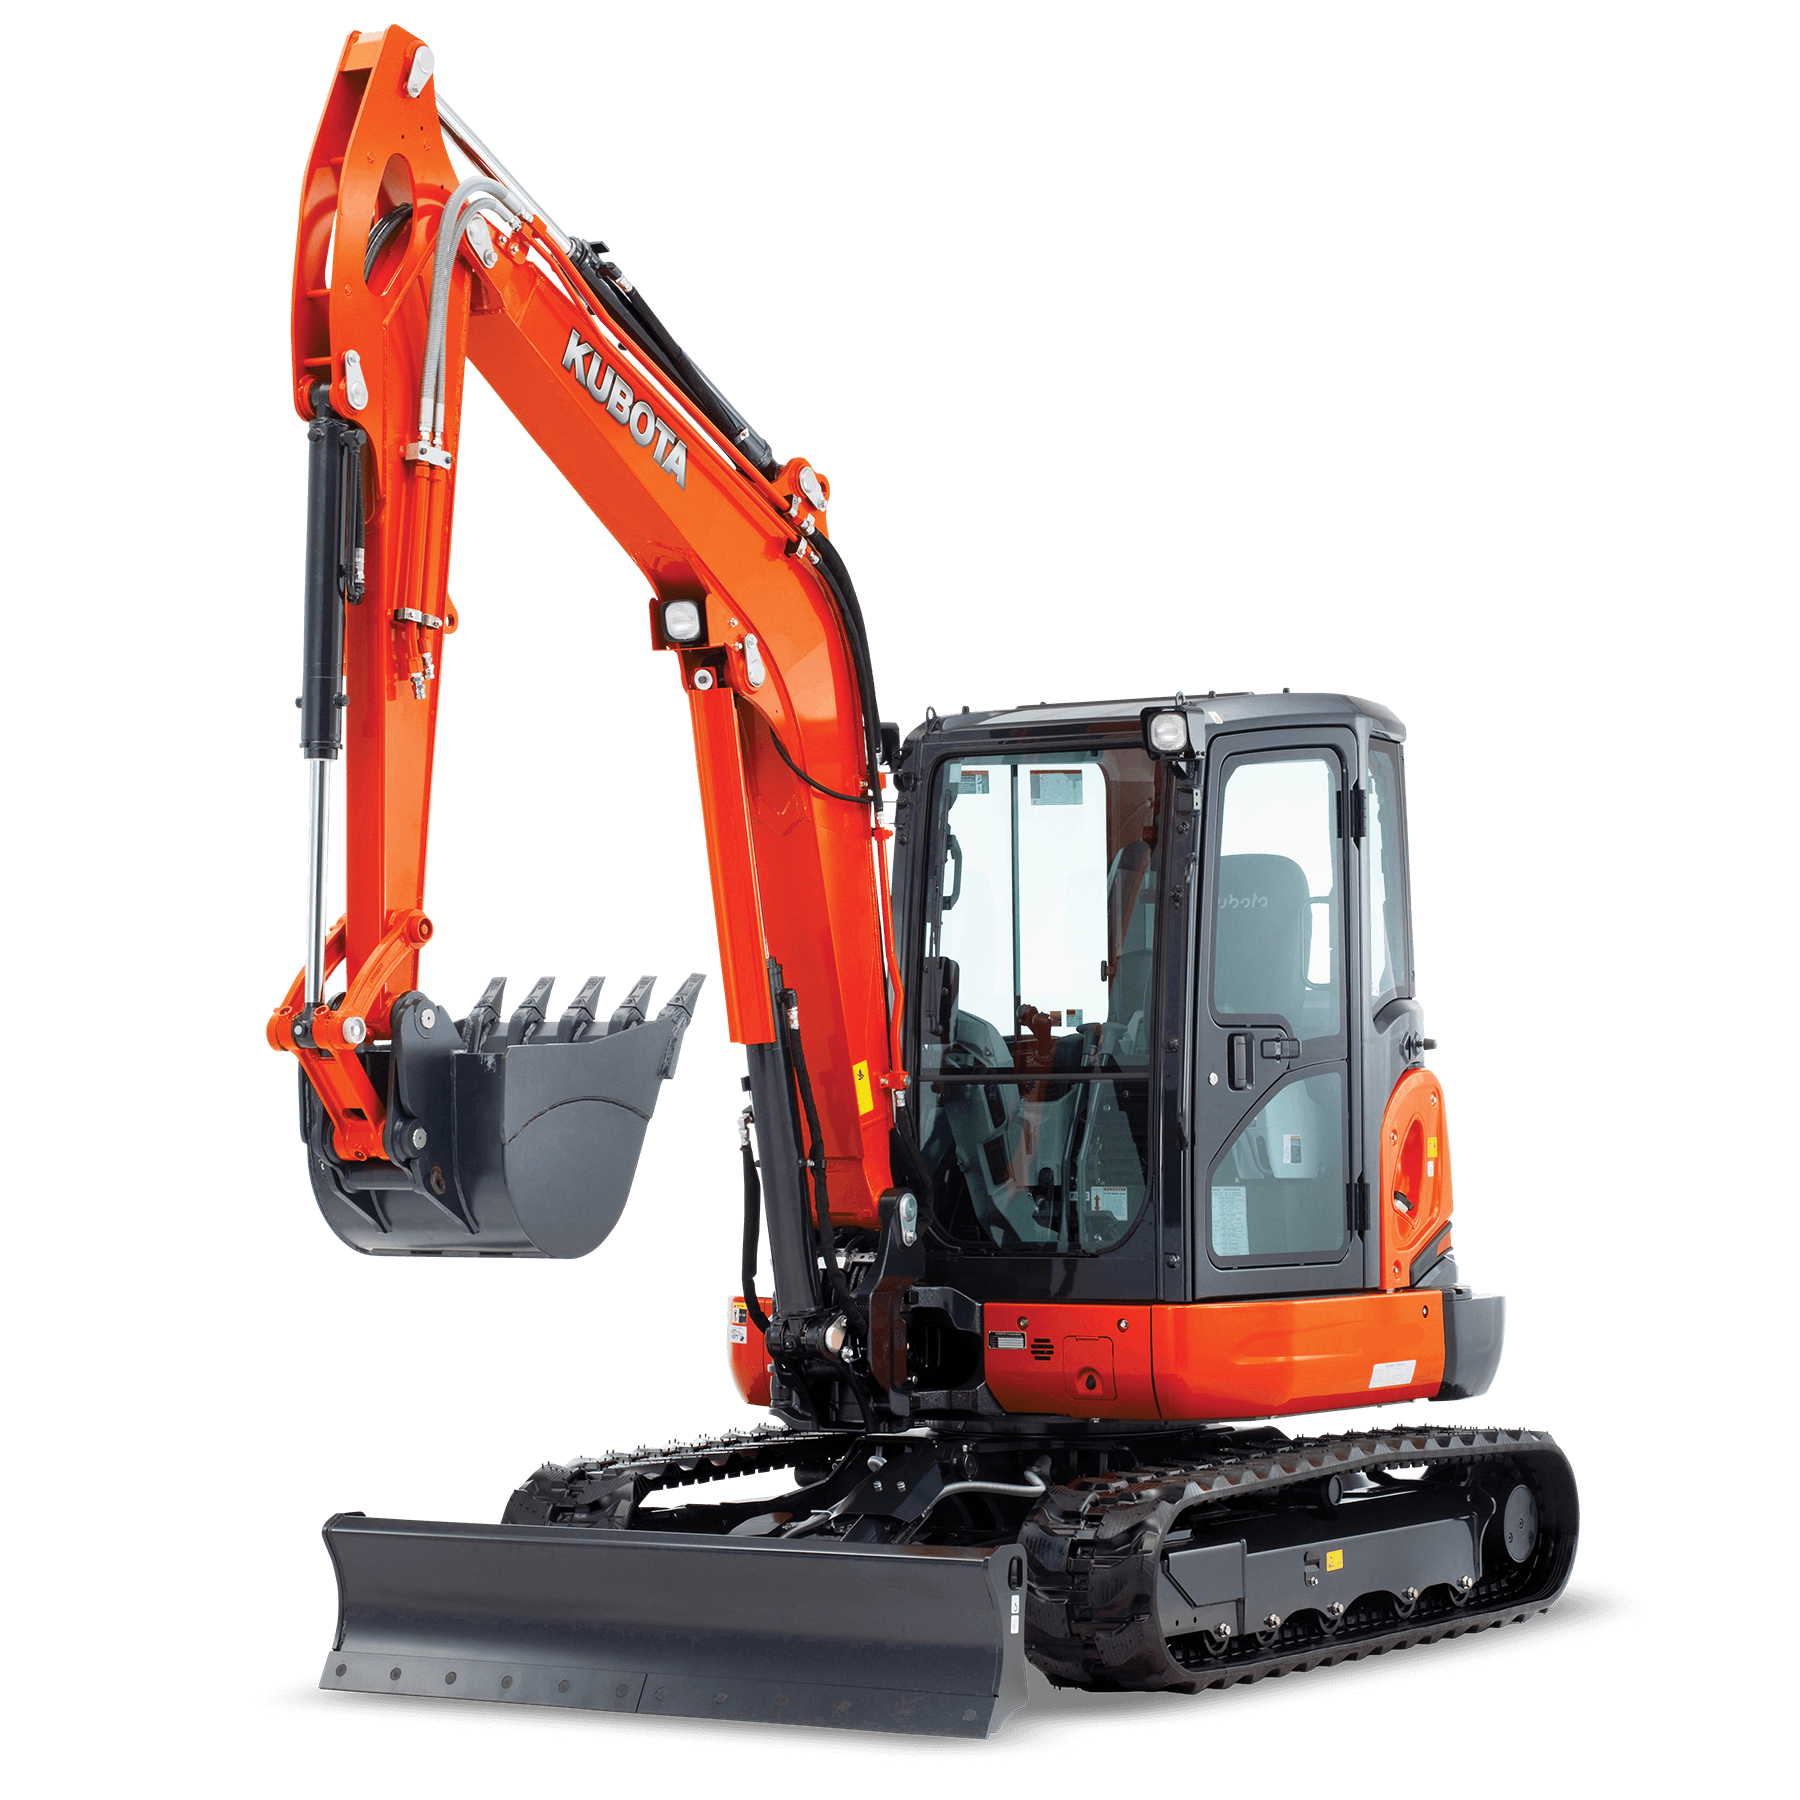 Tracked excavator 12511lbs 83in